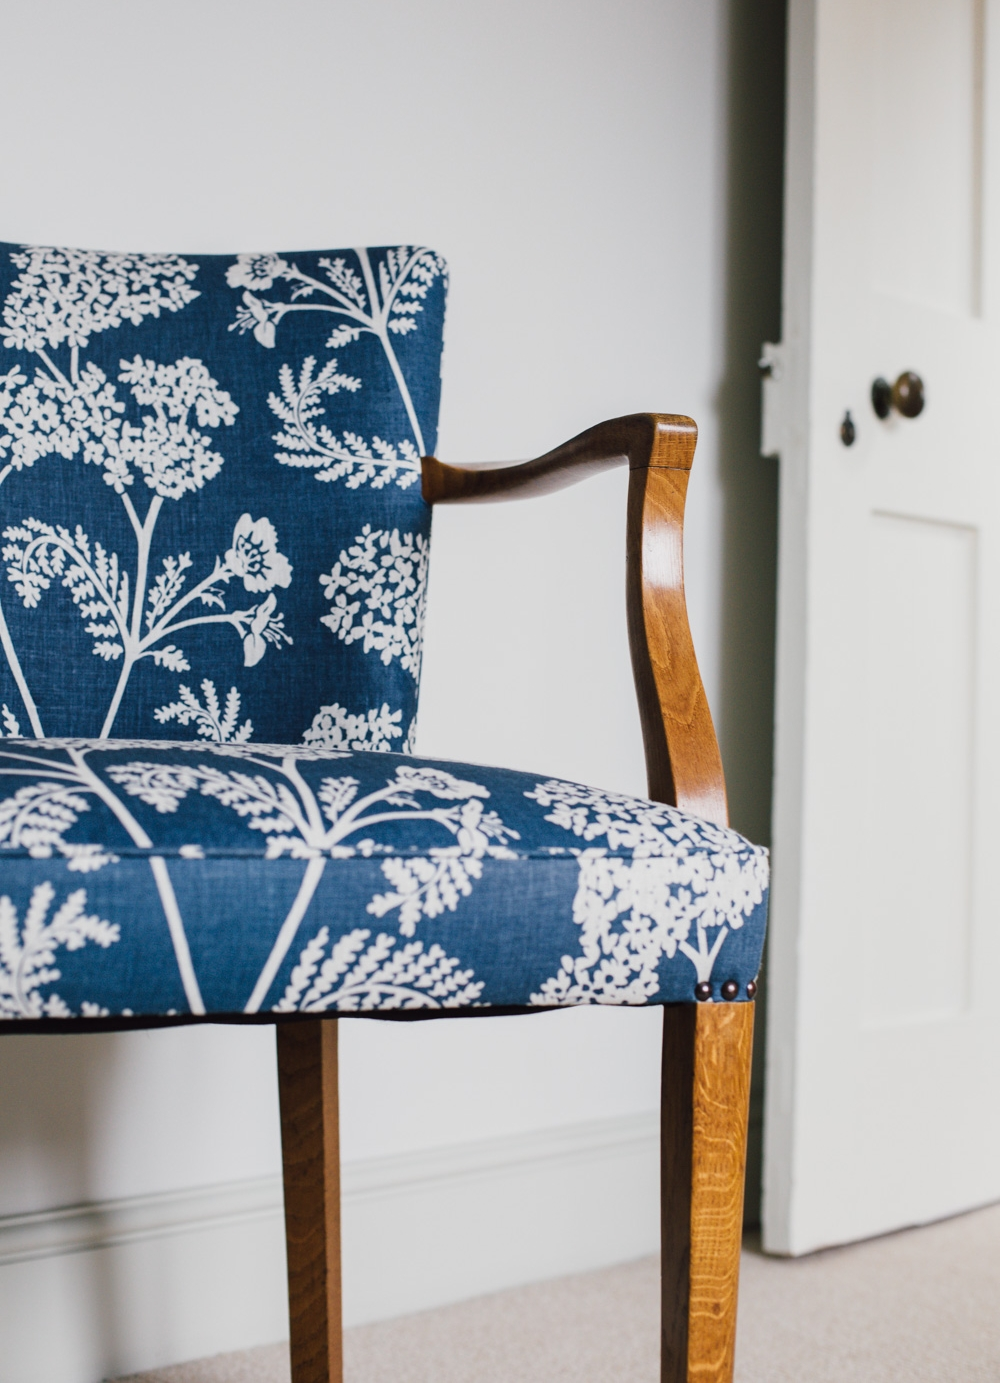 Achillea ground large in Burghley blue on natural linen.